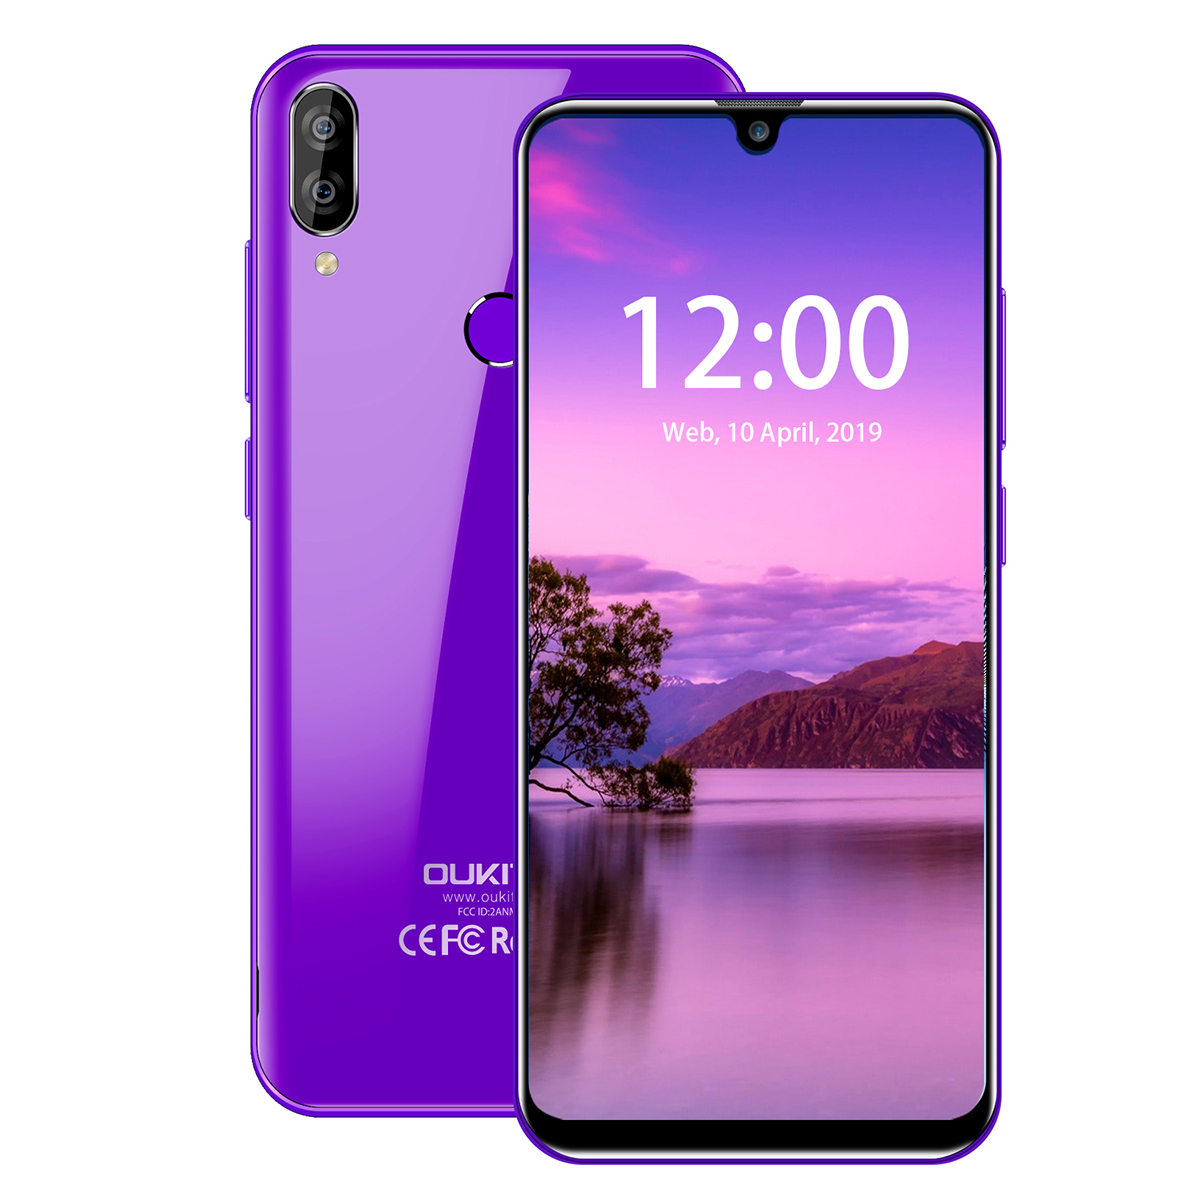 OUKITEL C16 Smartphone 5.71 inch Quad Core 2G RAM 16G ROM Cellphone 2600mAh Dual Camera Unlock Android 9.0 Mobile Phone